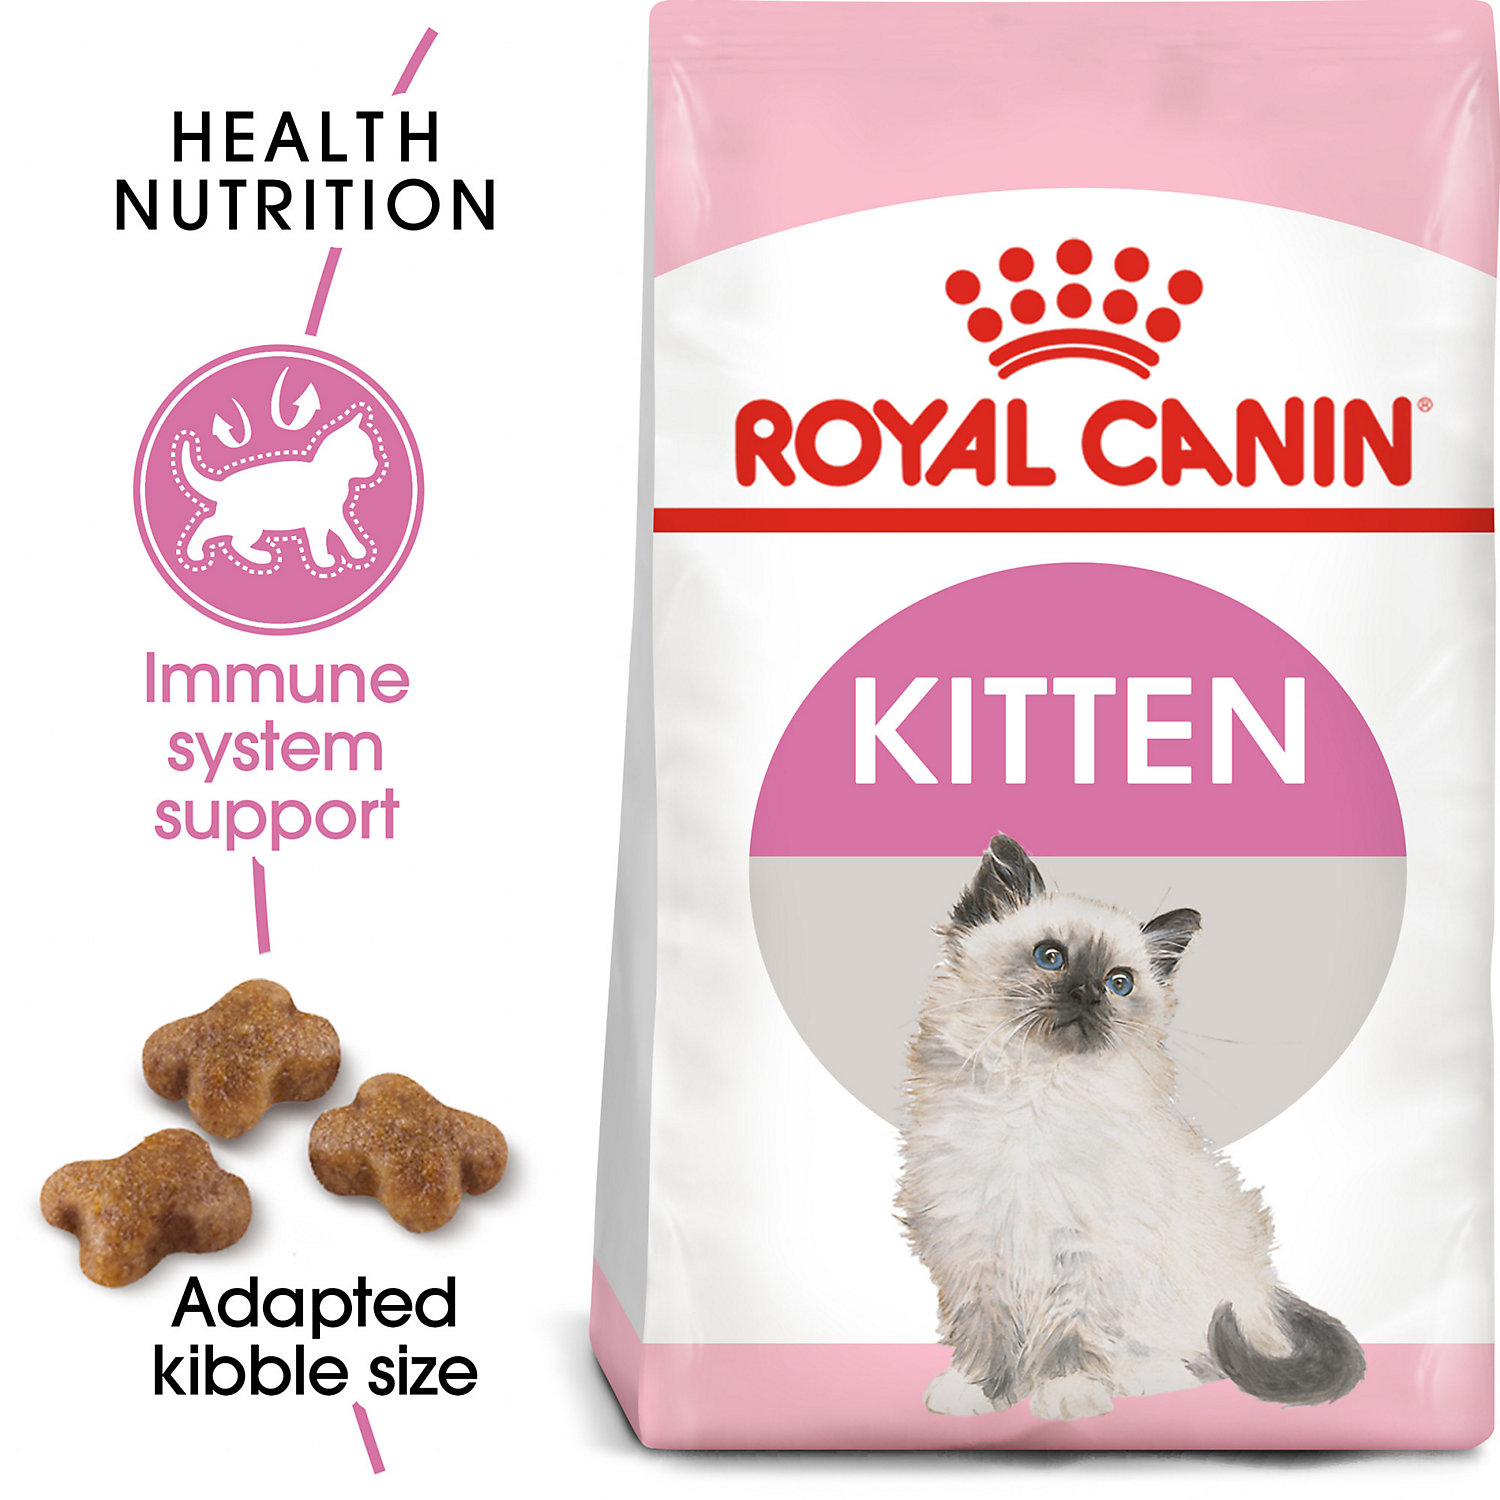 Royal Canin Feline Health Nutrition Dry Food For Young Kittens 15 Lbs Cat Nutrition Kitten Food Health Nutrition